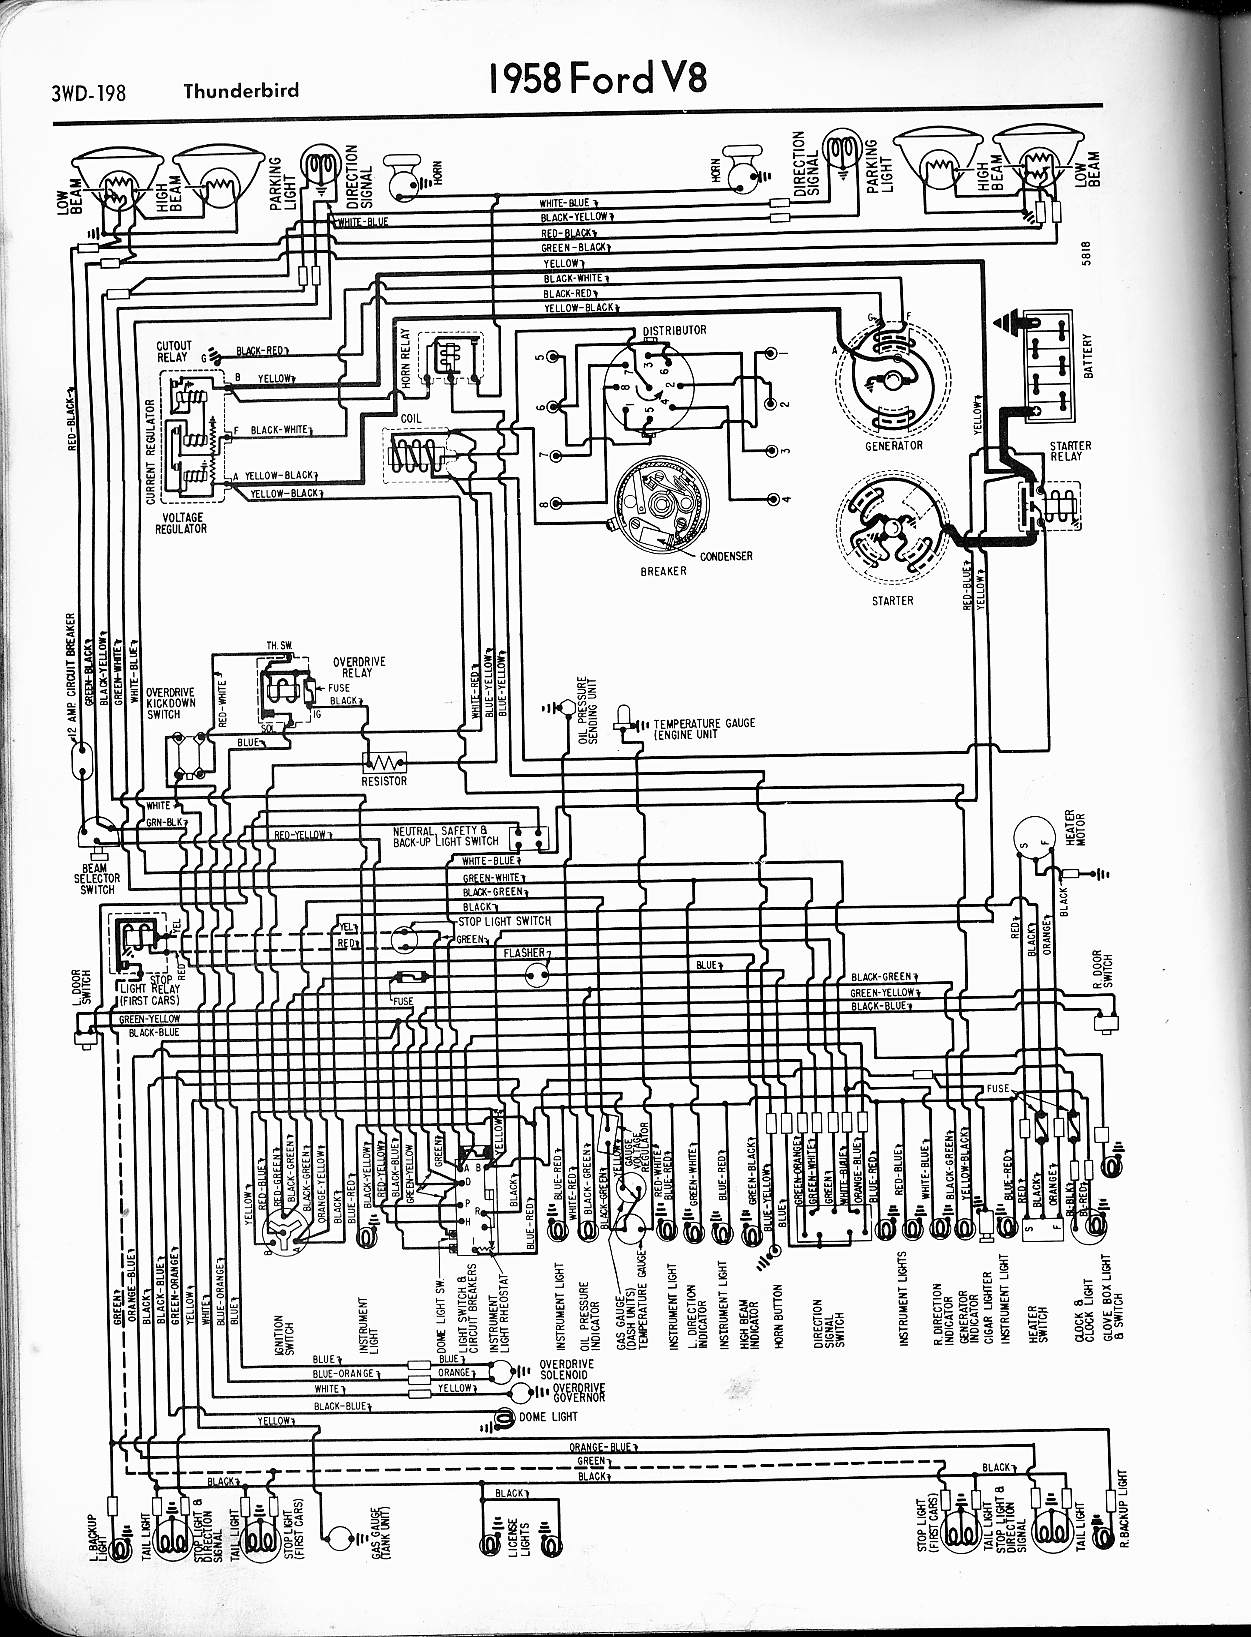 1958 Plymouth Wiring Diagram Reinvent Your Alfa Romeo Online Schematics Rh Delvato Co 1934 Chrysler Positive Ground